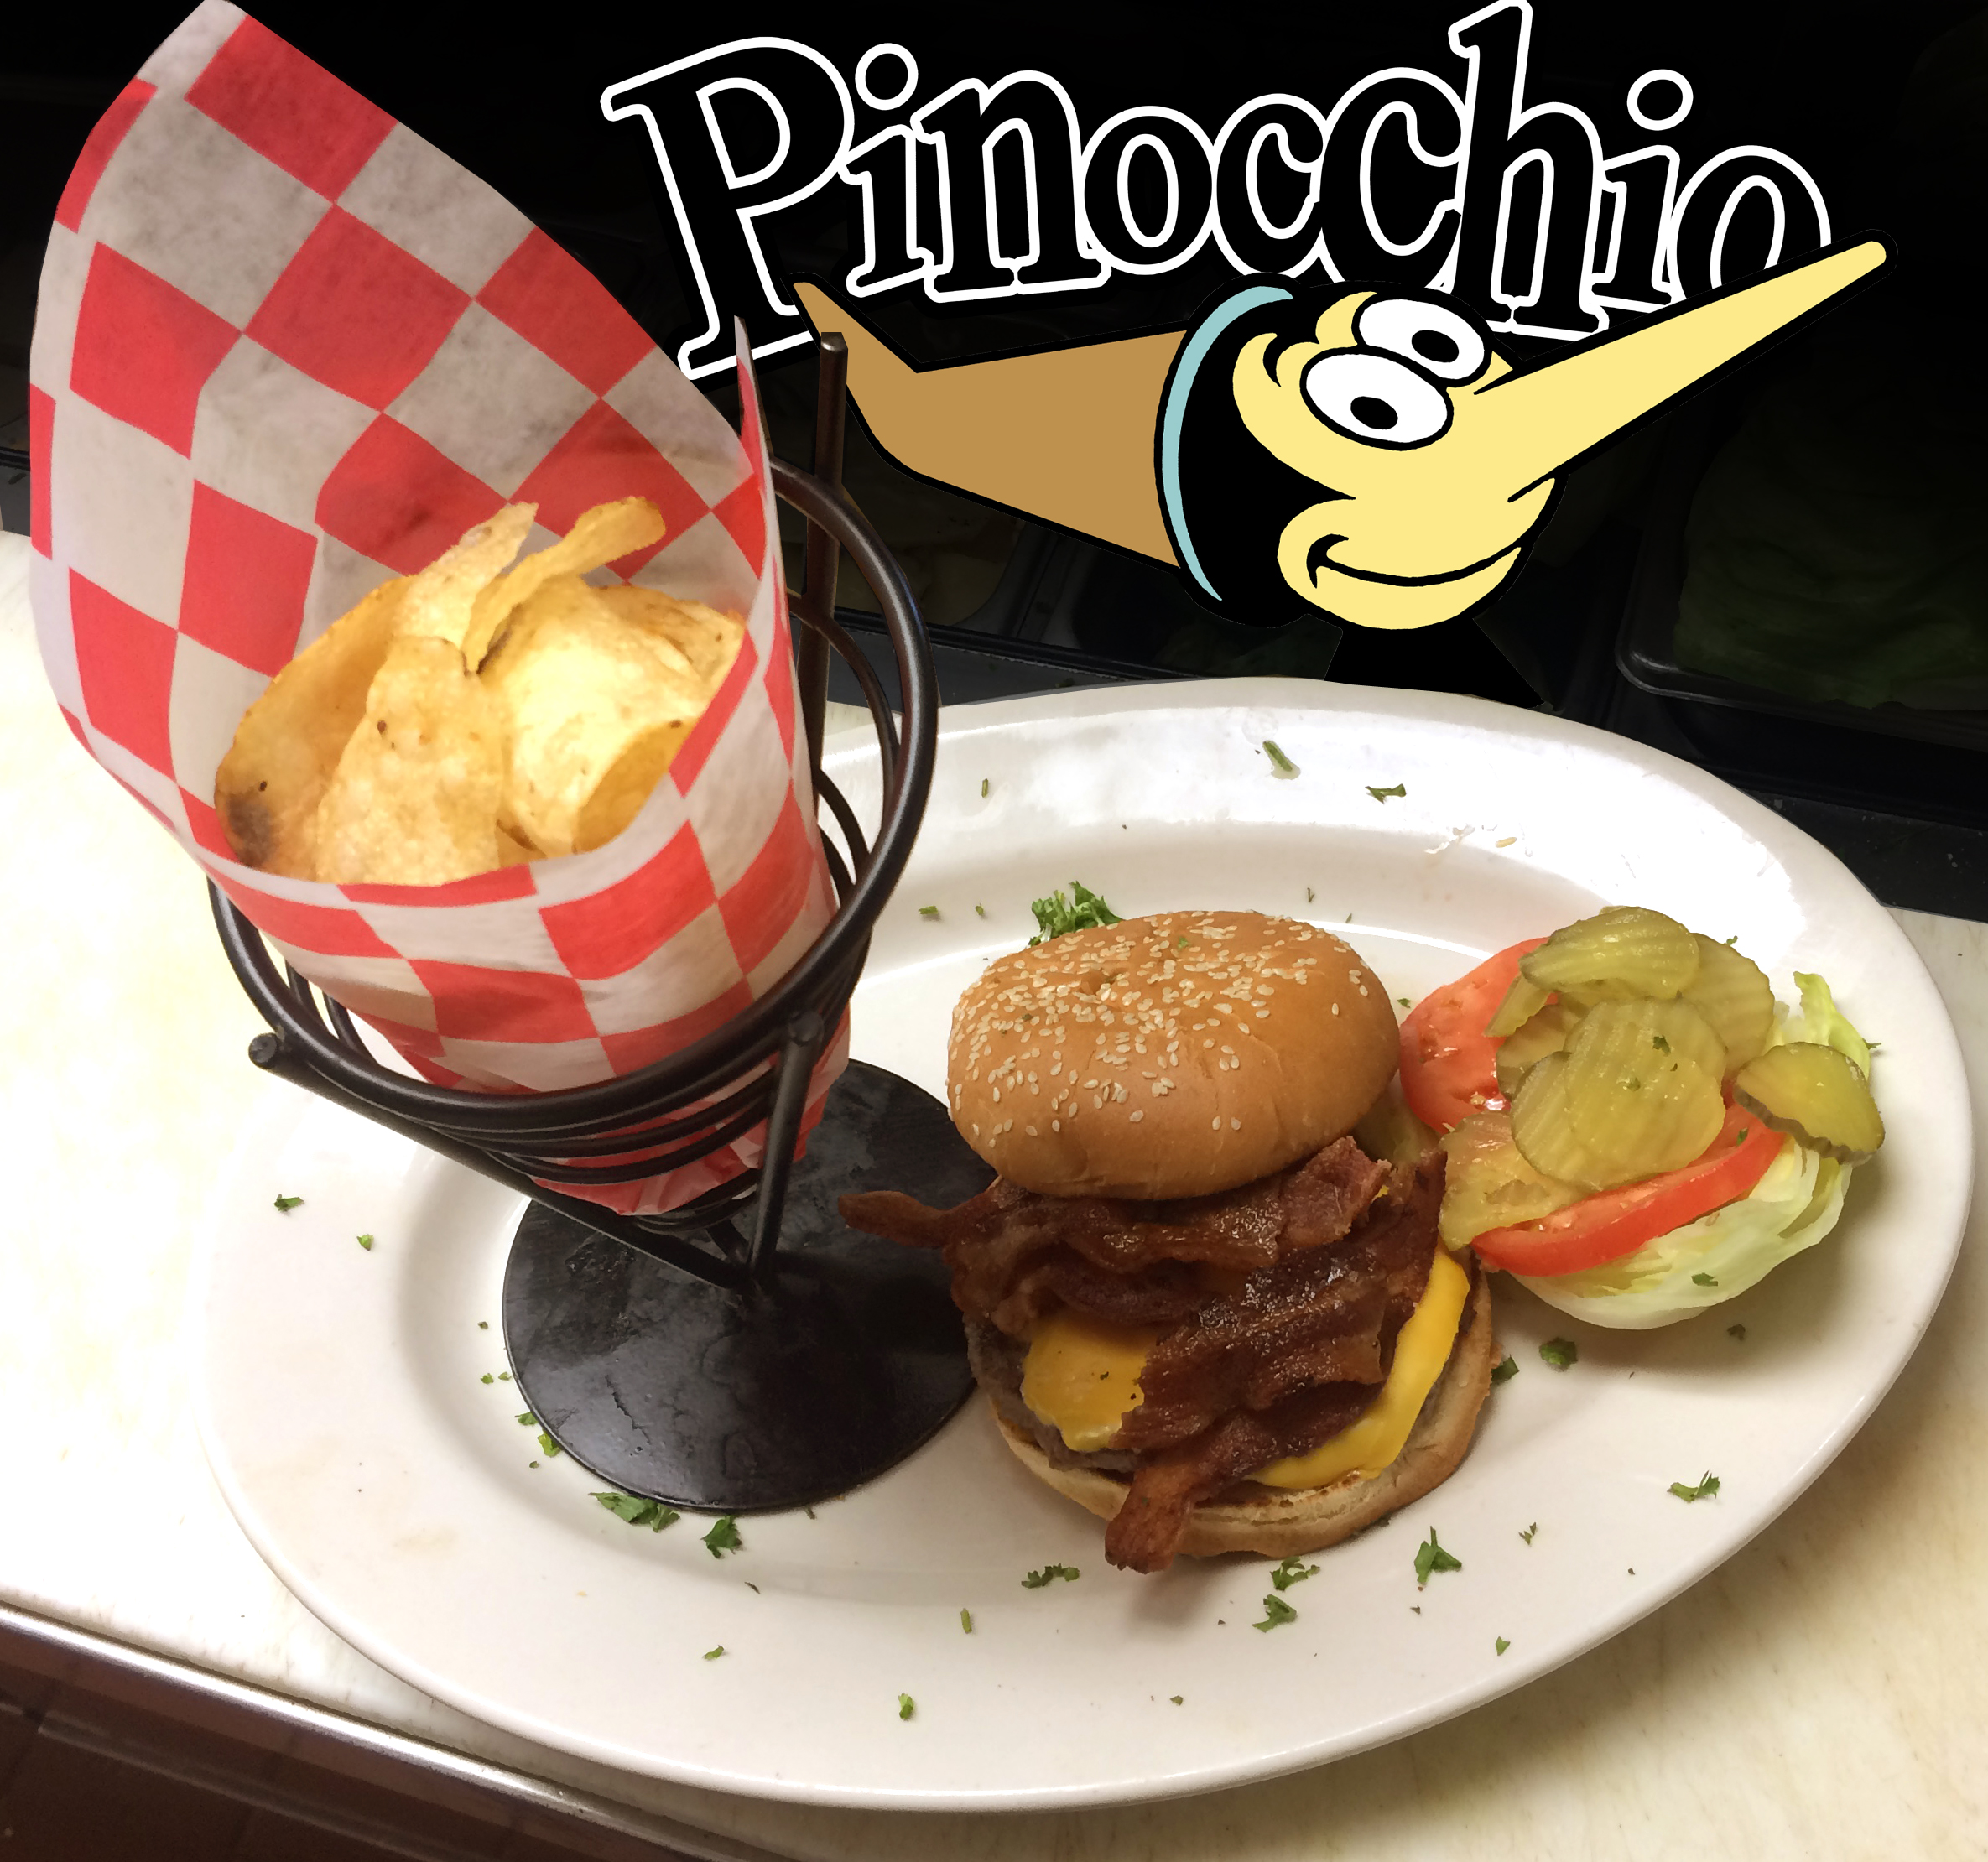 Pinocchio CheeseBurger